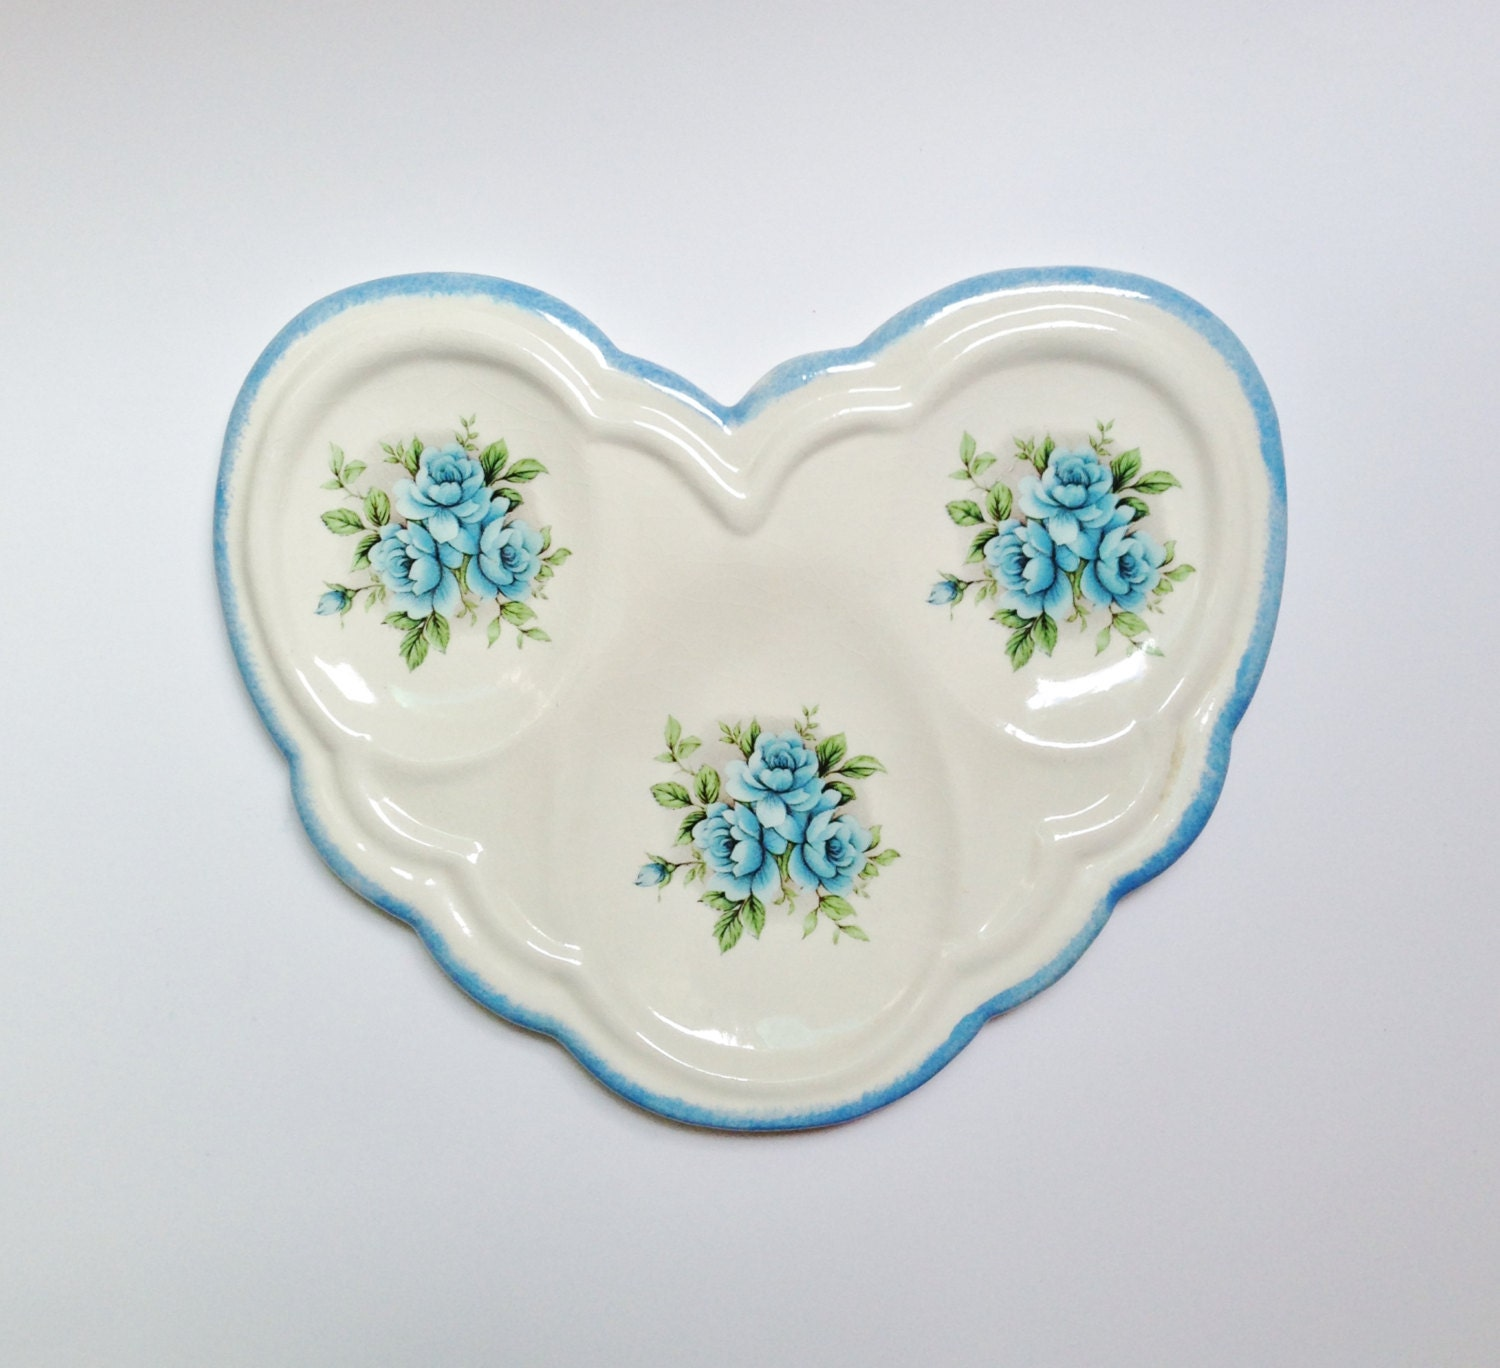 Unique Blue Cabbage Rose Heart Shaped Spoon Rest Vintage Stoneware - northandsouthshabby